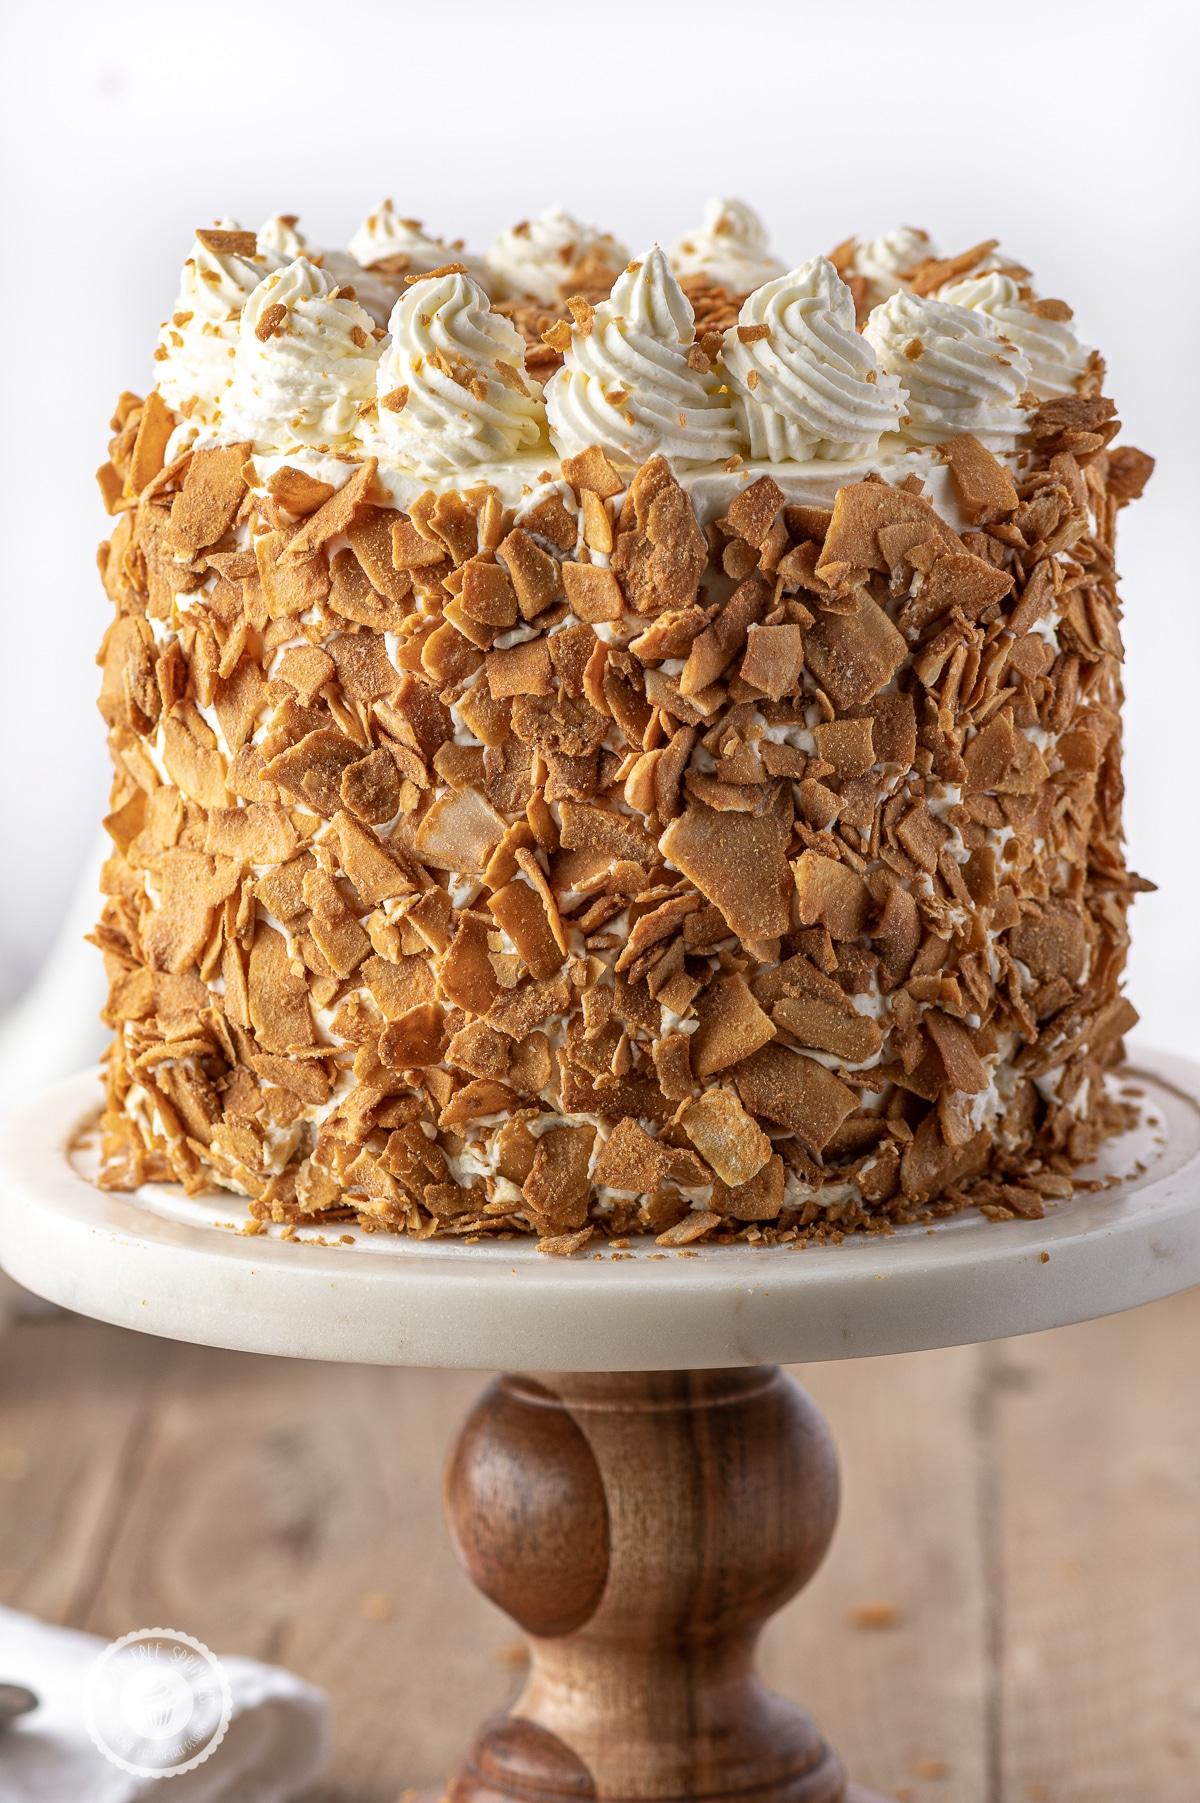 A close up photograph of a cake coated in golden brown toasted coconut on a a wood and marble cakestand